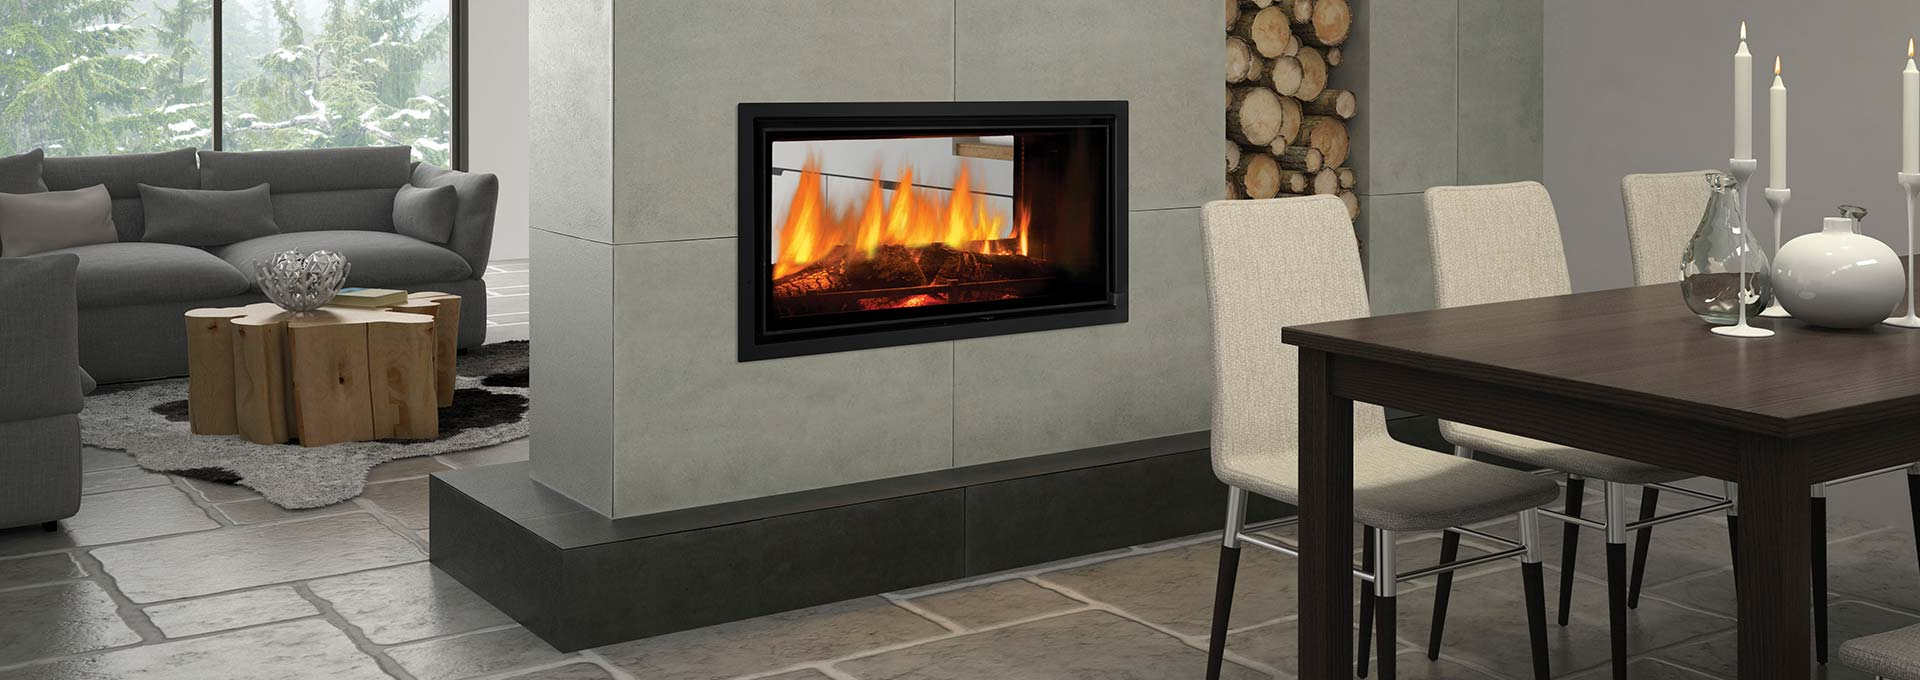 Buy the Regency Mansfield Wood Fireplace at Gas Log Fires Melbourne